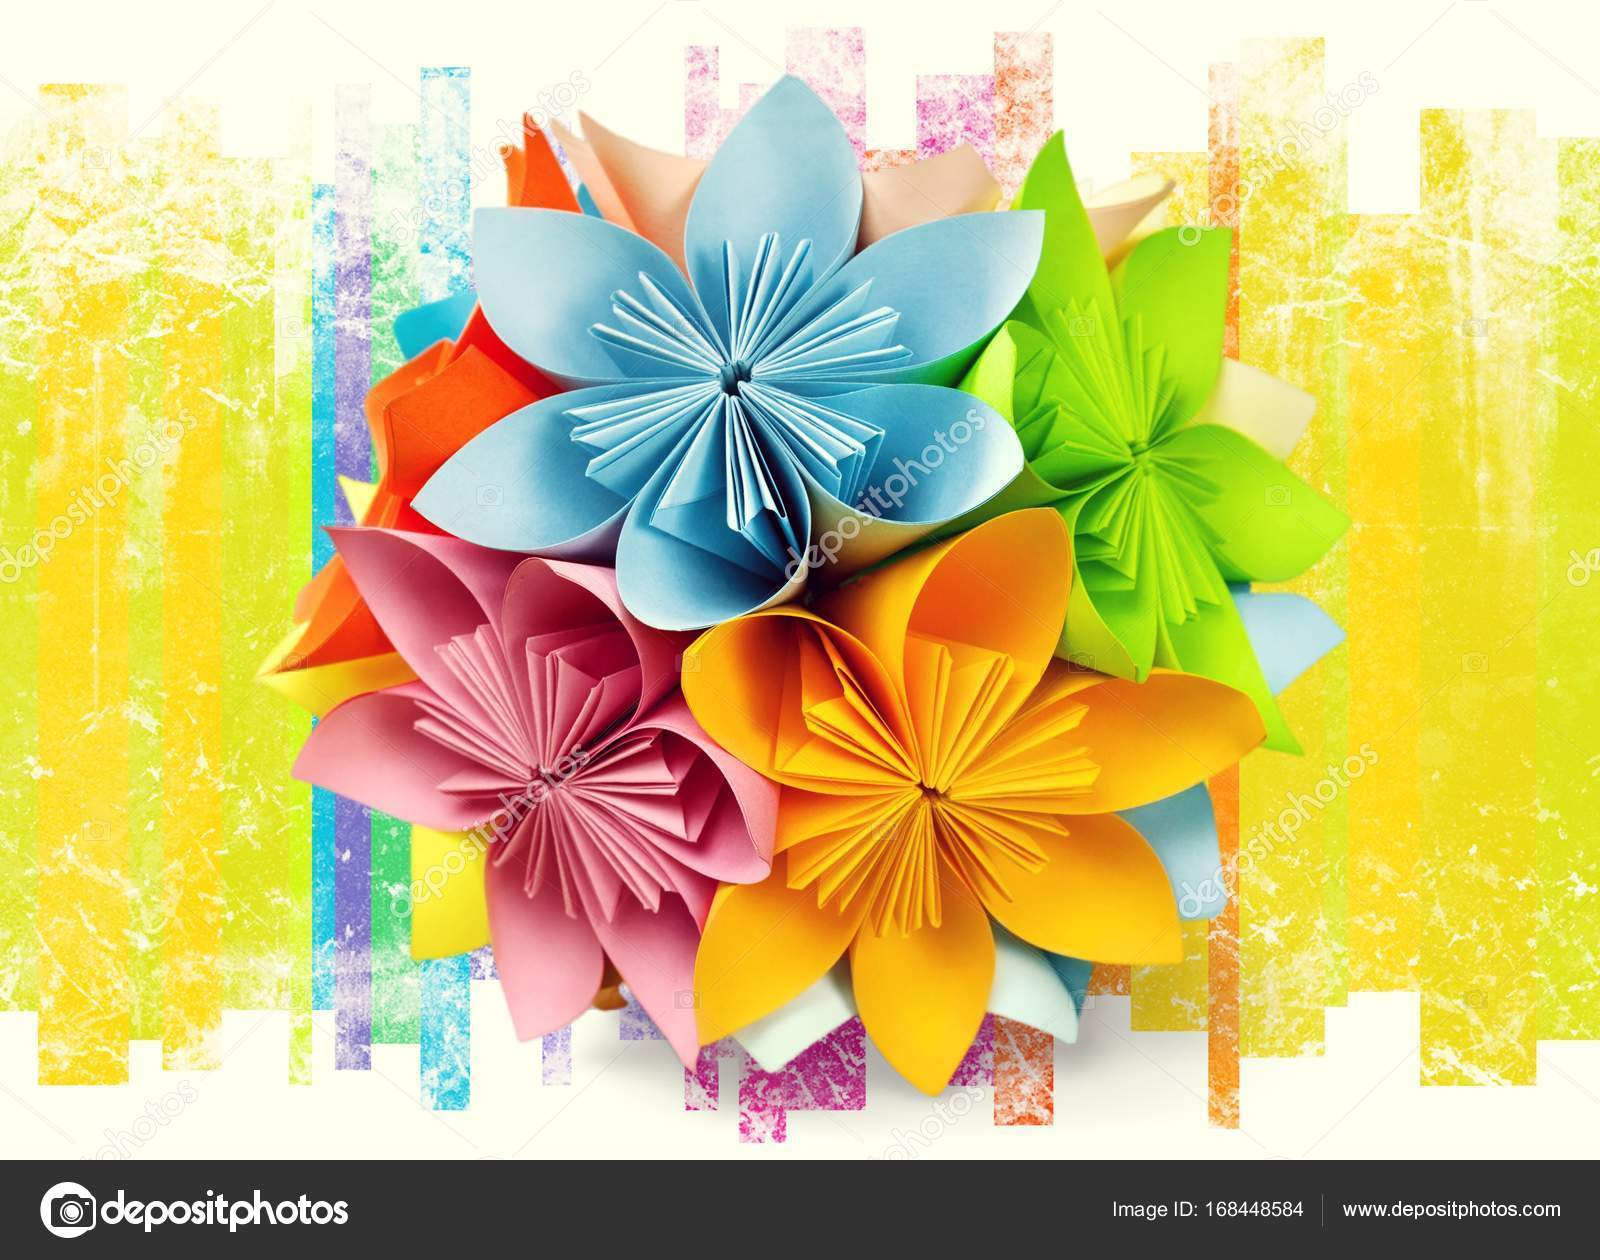 Origami Flowers On Background Stock Photo Billiondigital 168448584